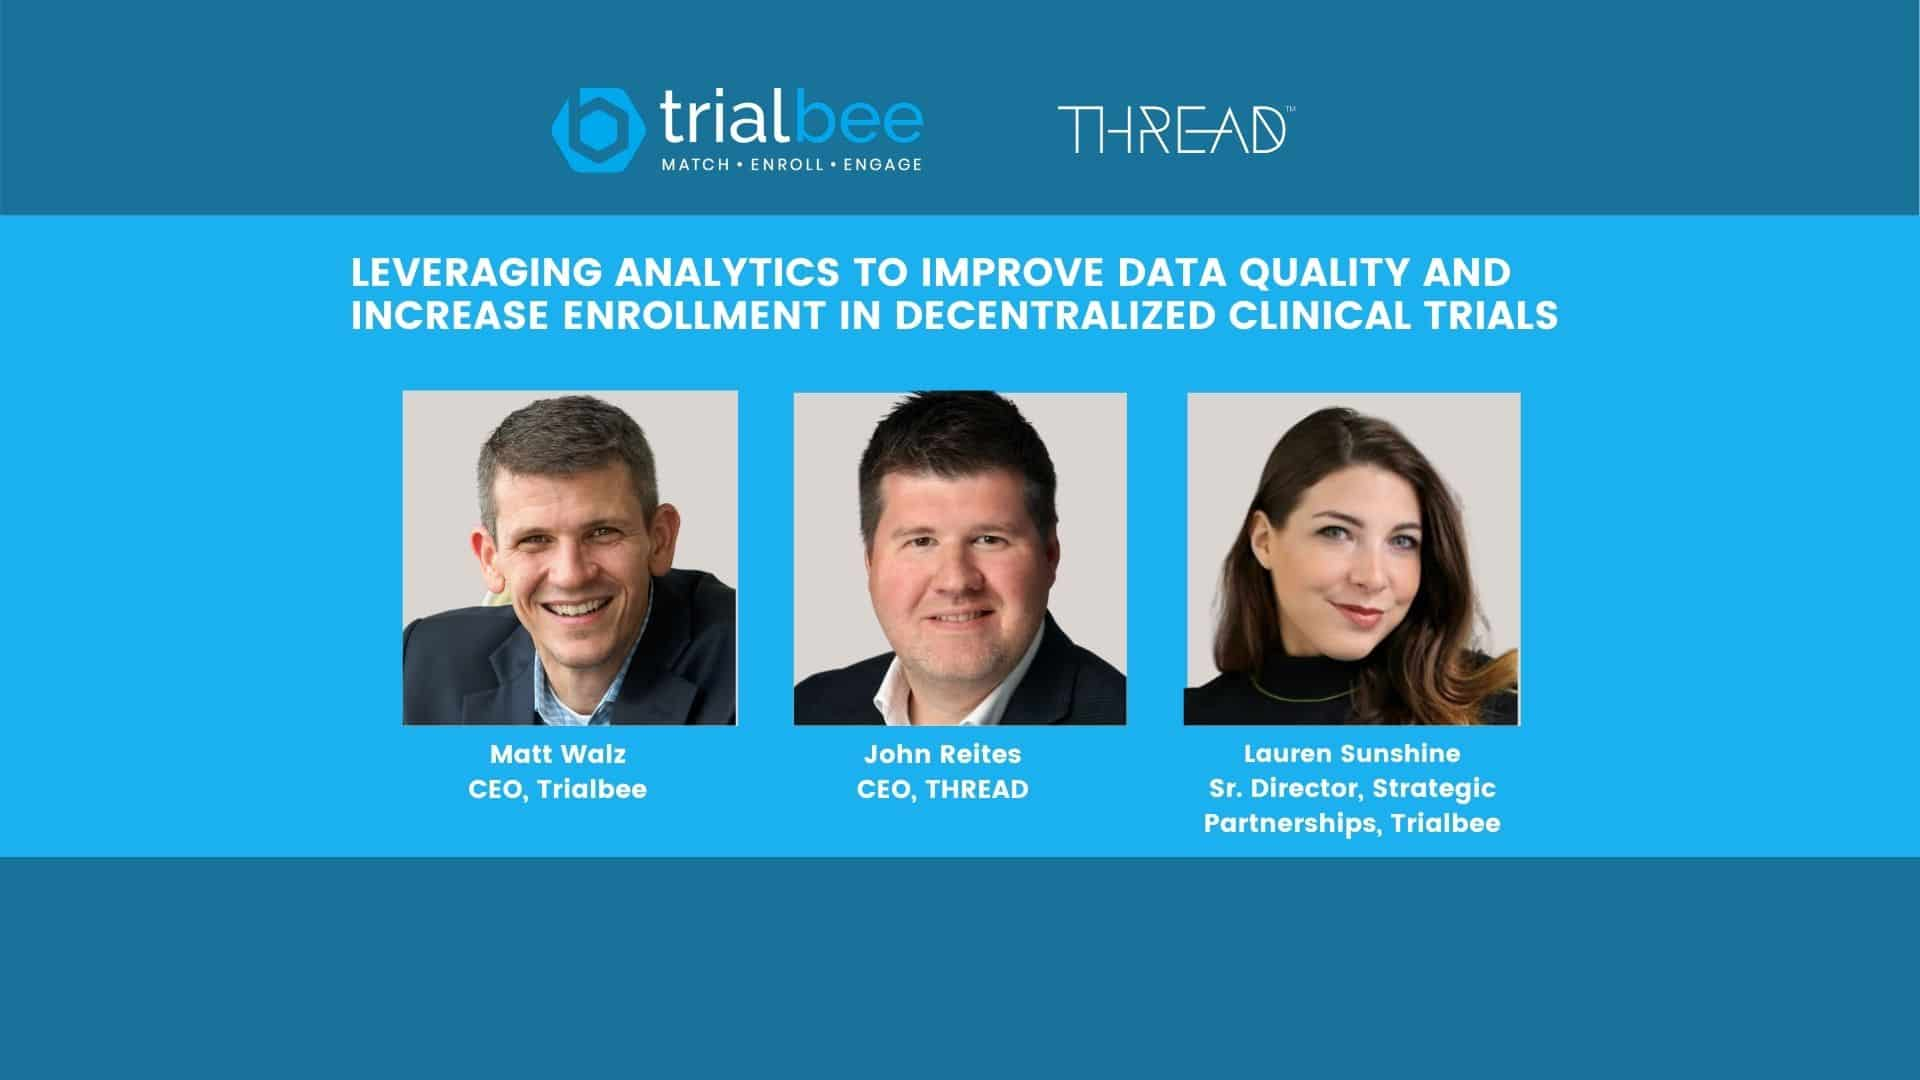 Leveraging Analytics to Improve Data Quality and Increase Enrollment in Decentralized Clinical Trials